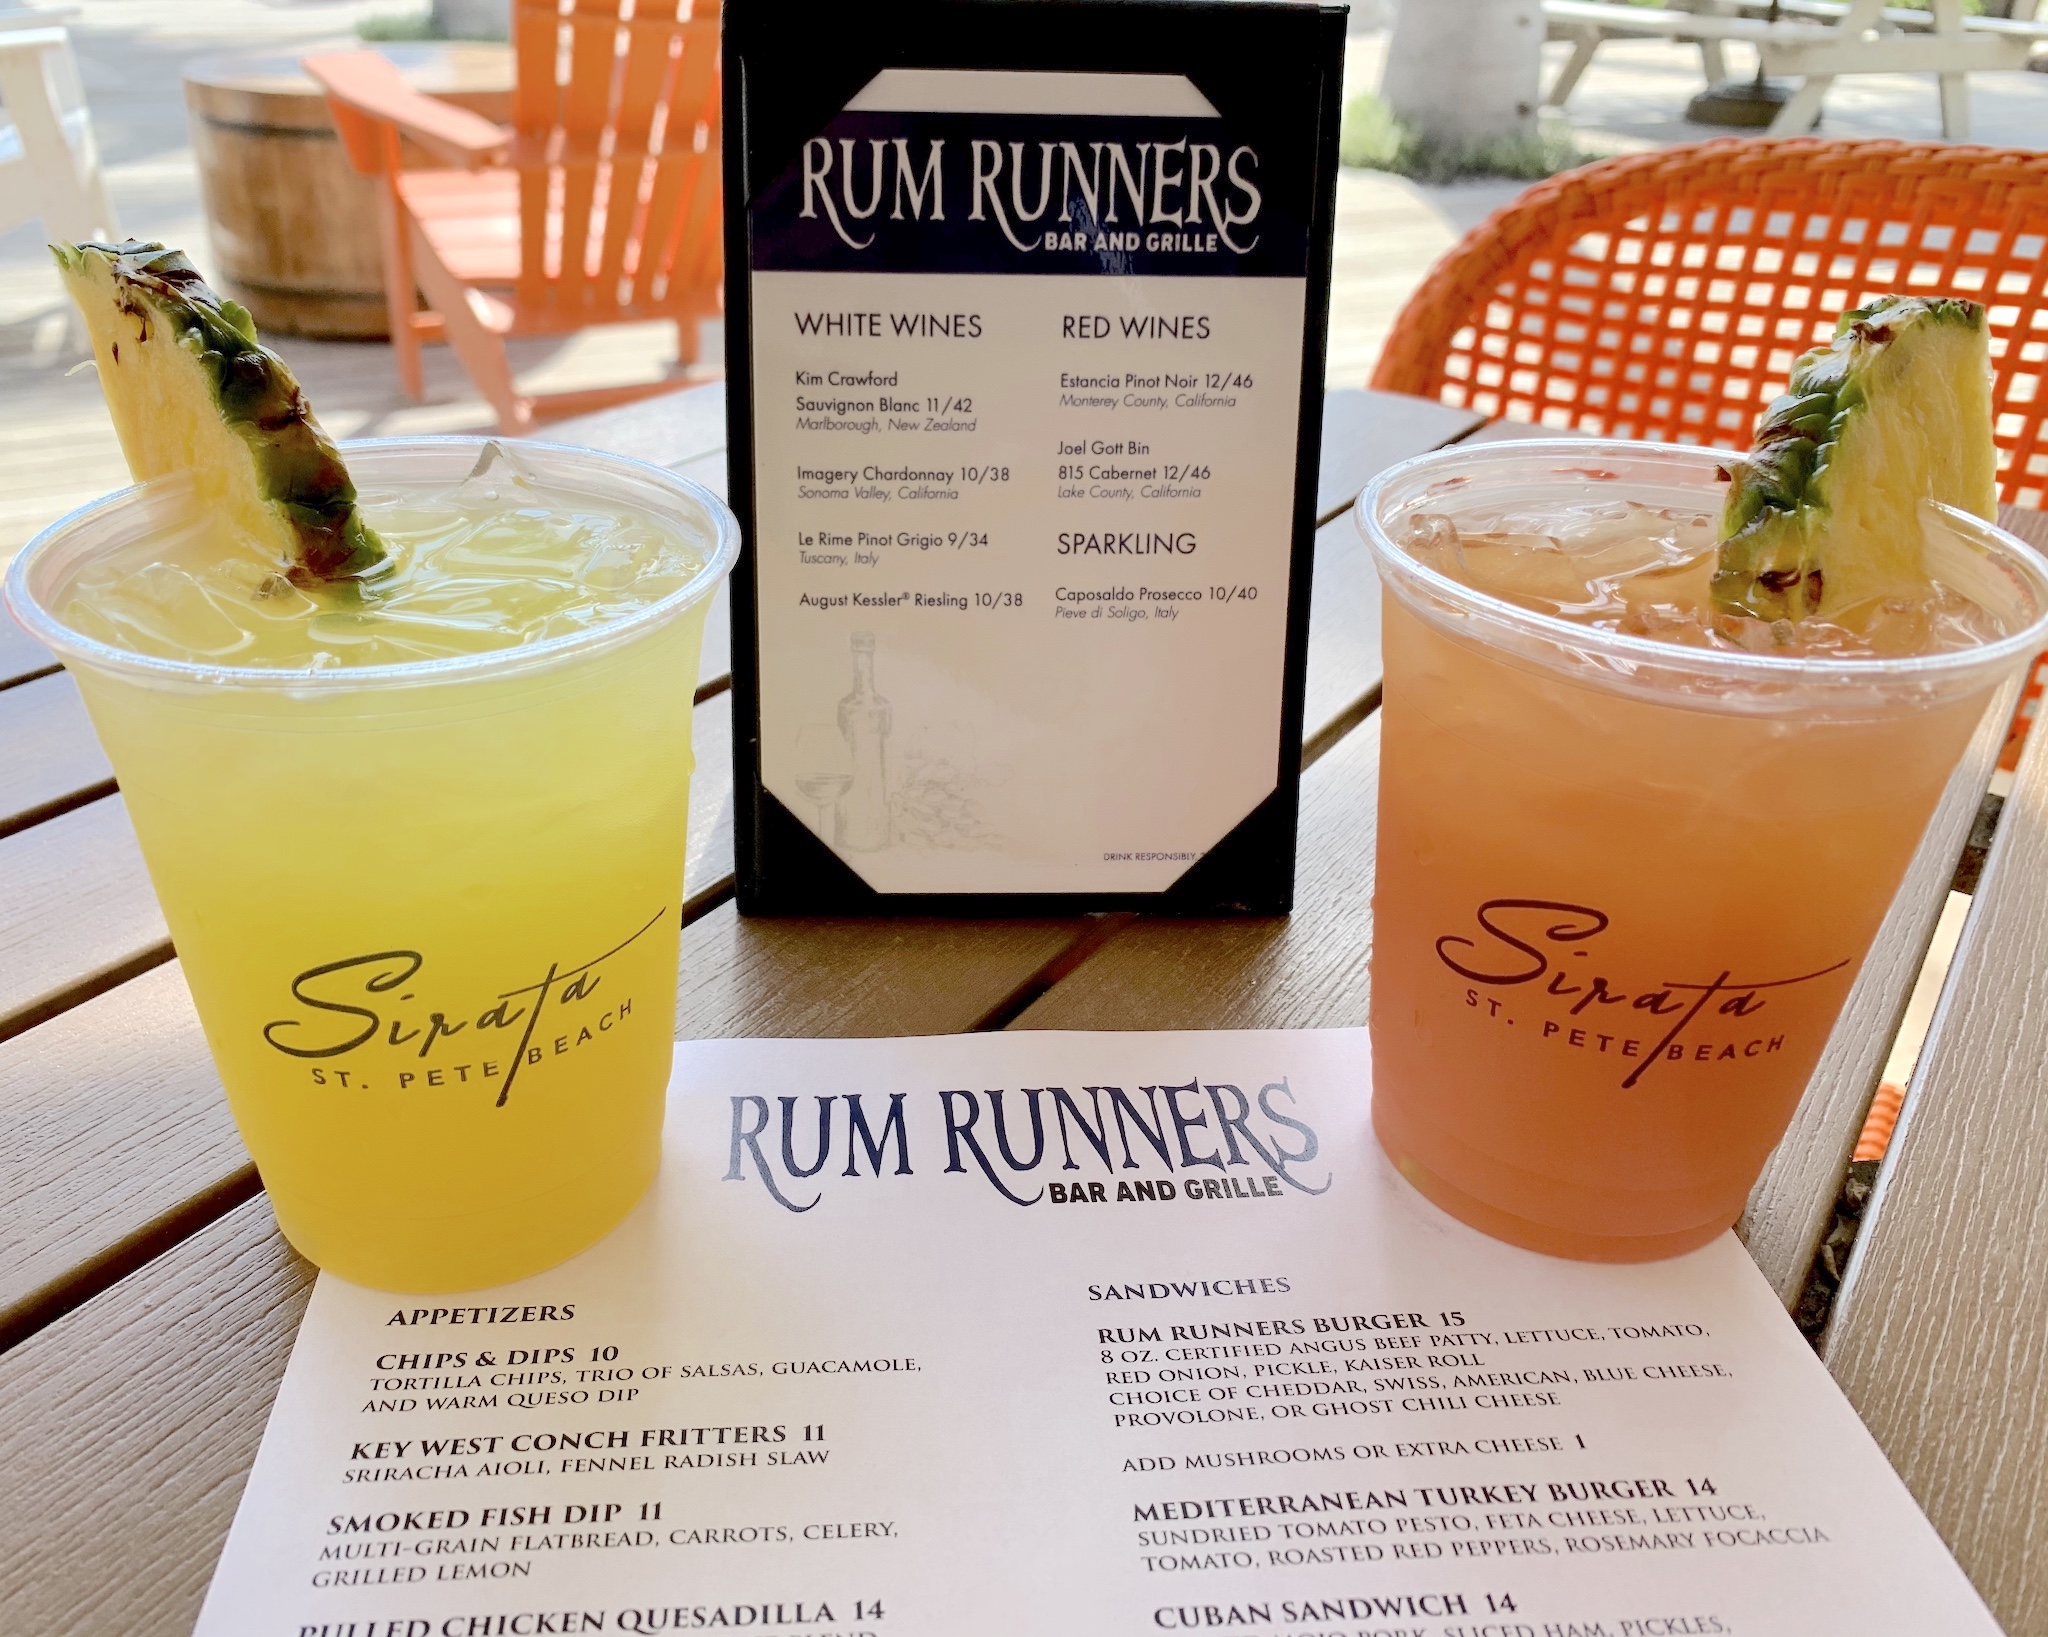 Rum Runners - Iguana Cooler - coconut rum, melon liqueur and pineapple juice; The Rum Runner - light and dark rums, banana liqueur, blackberry brandy and a float of 151 rum